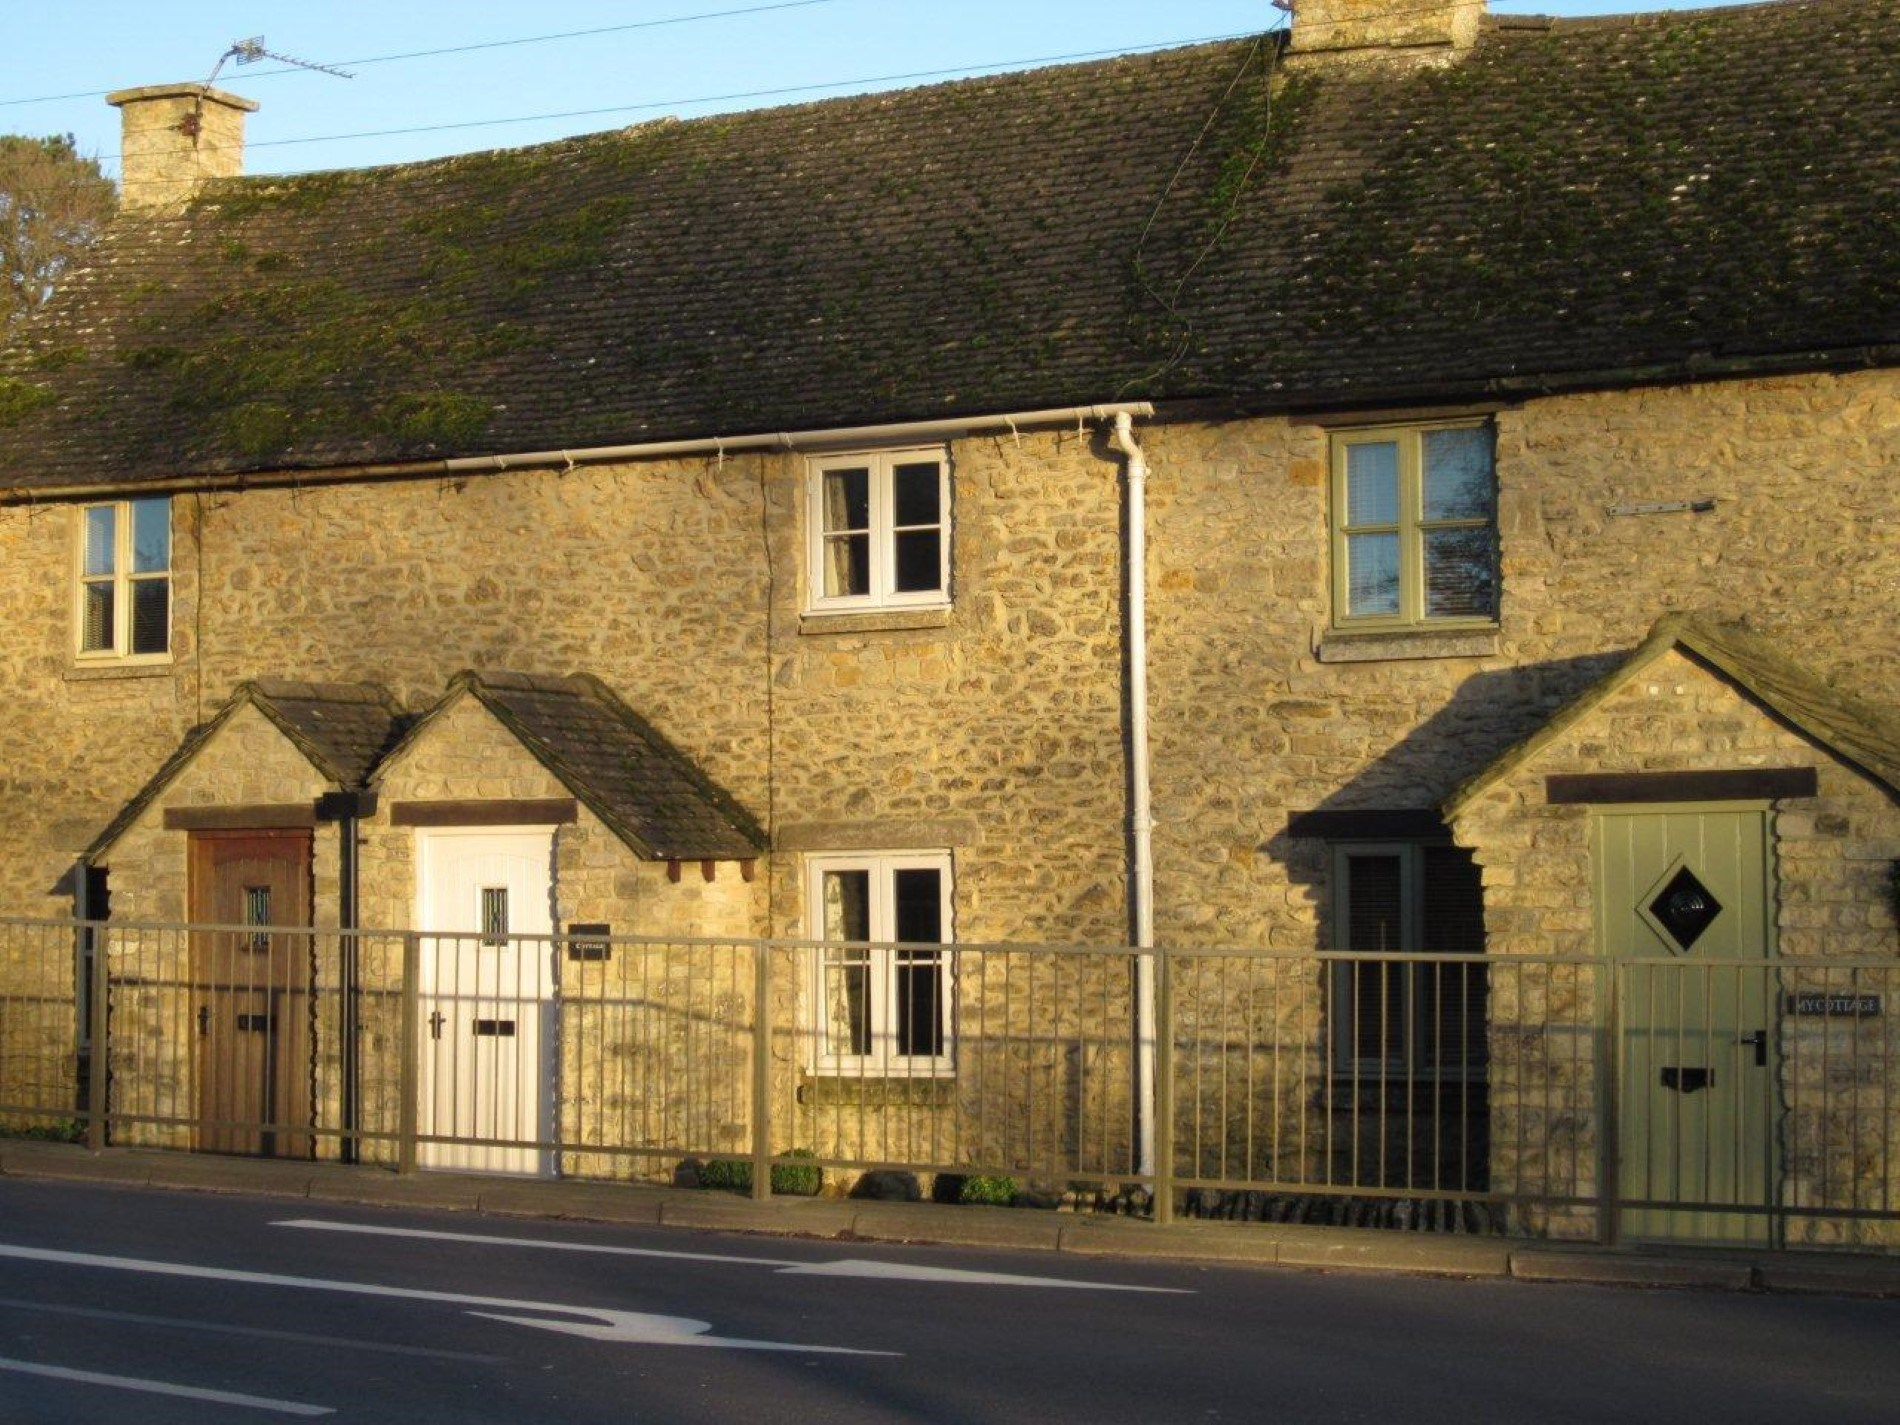 Located on the A429 road with a short stroll into Stow on the Wold